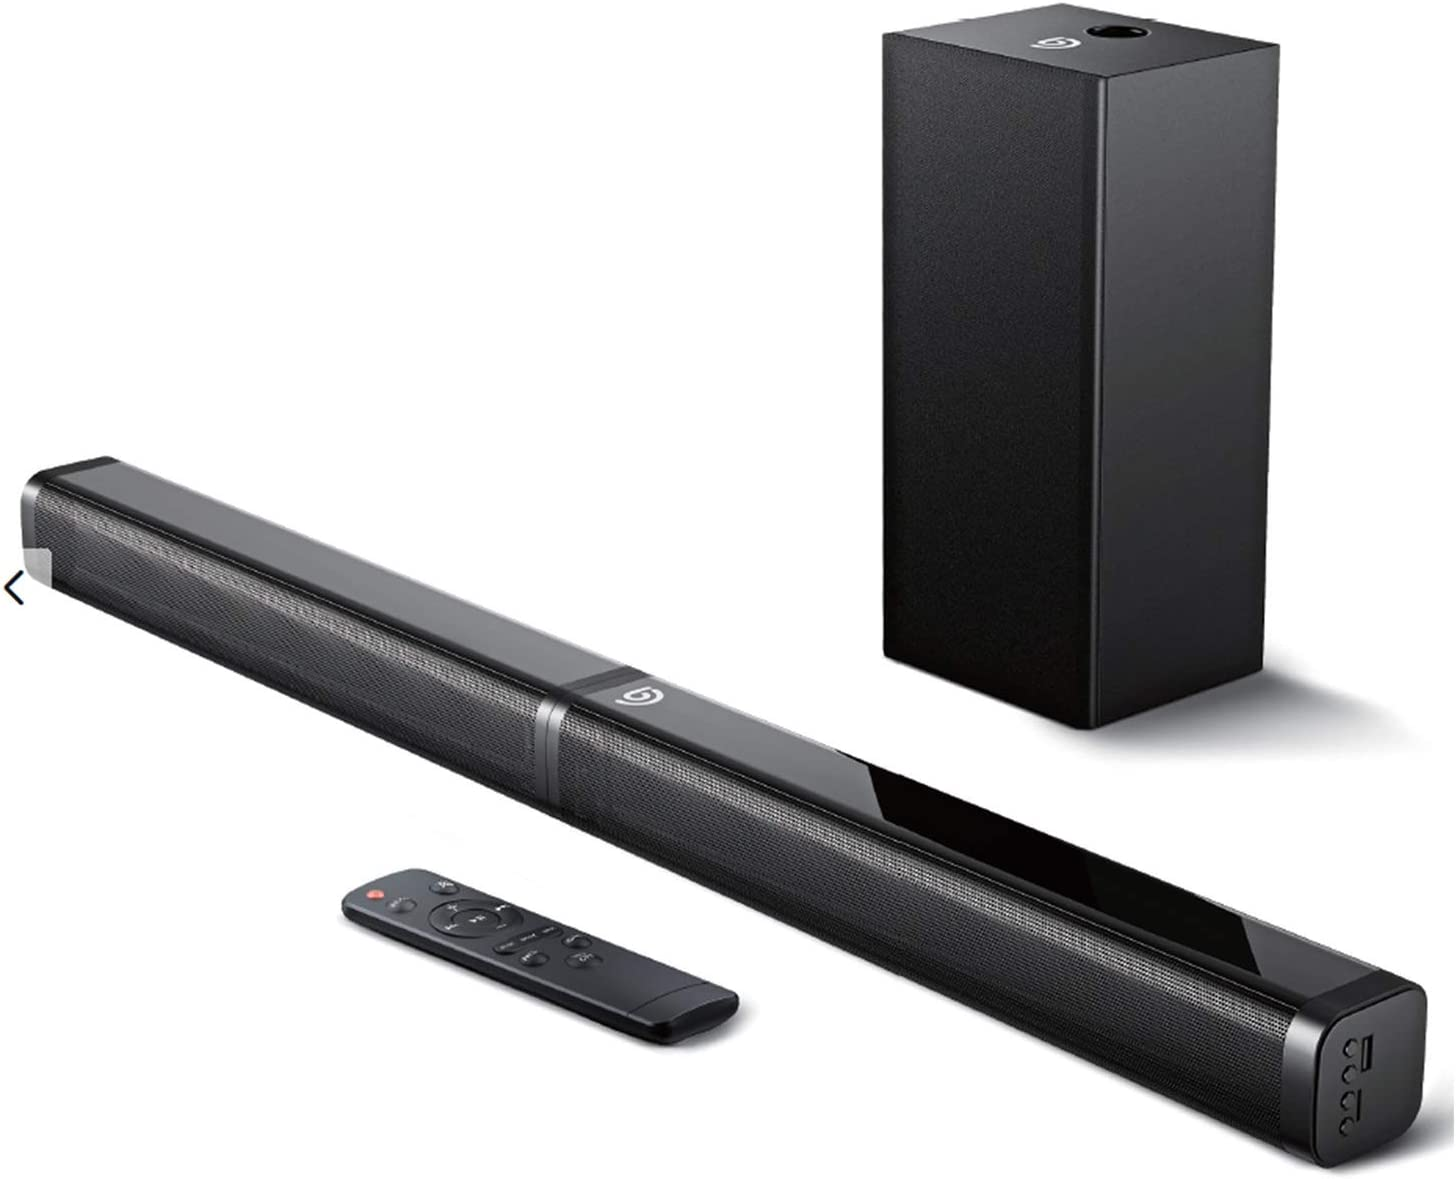 Sound Bar with Subwoofer, Bomaker Ultra-Slim 2.1 CH Sound Bars for TV, 100W/110dB, 5 EQ Modes, 31 Inch, Works with 4K & HD & Smart TV, Bluetooth 5.0 Enabled, LED Display, Outdoor Surround Sound